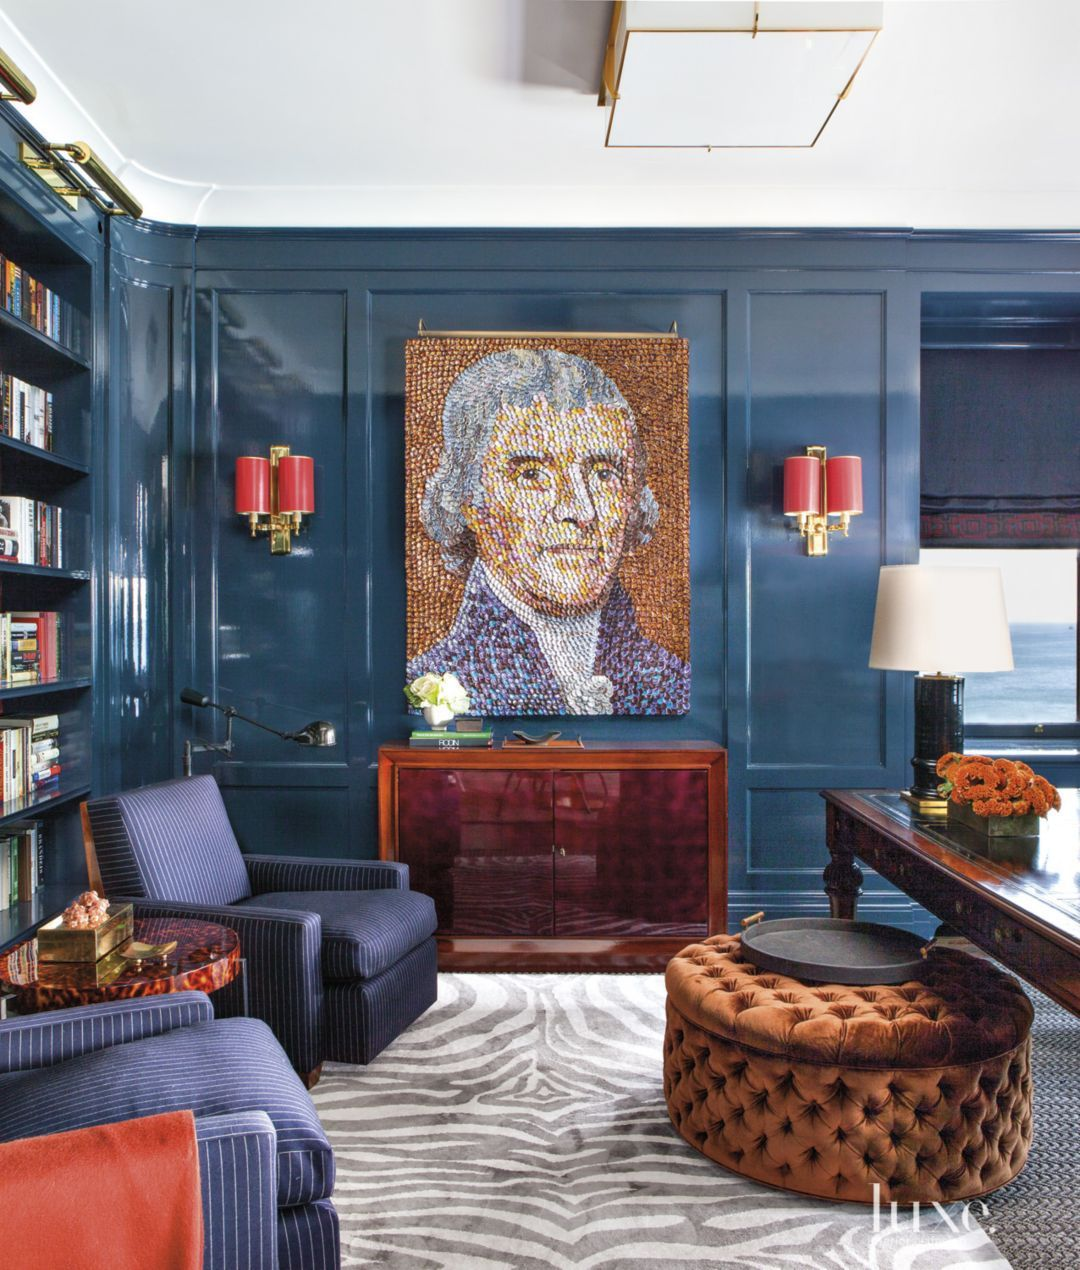 Blue Lacquered Walls Interior Design 3.jpeg